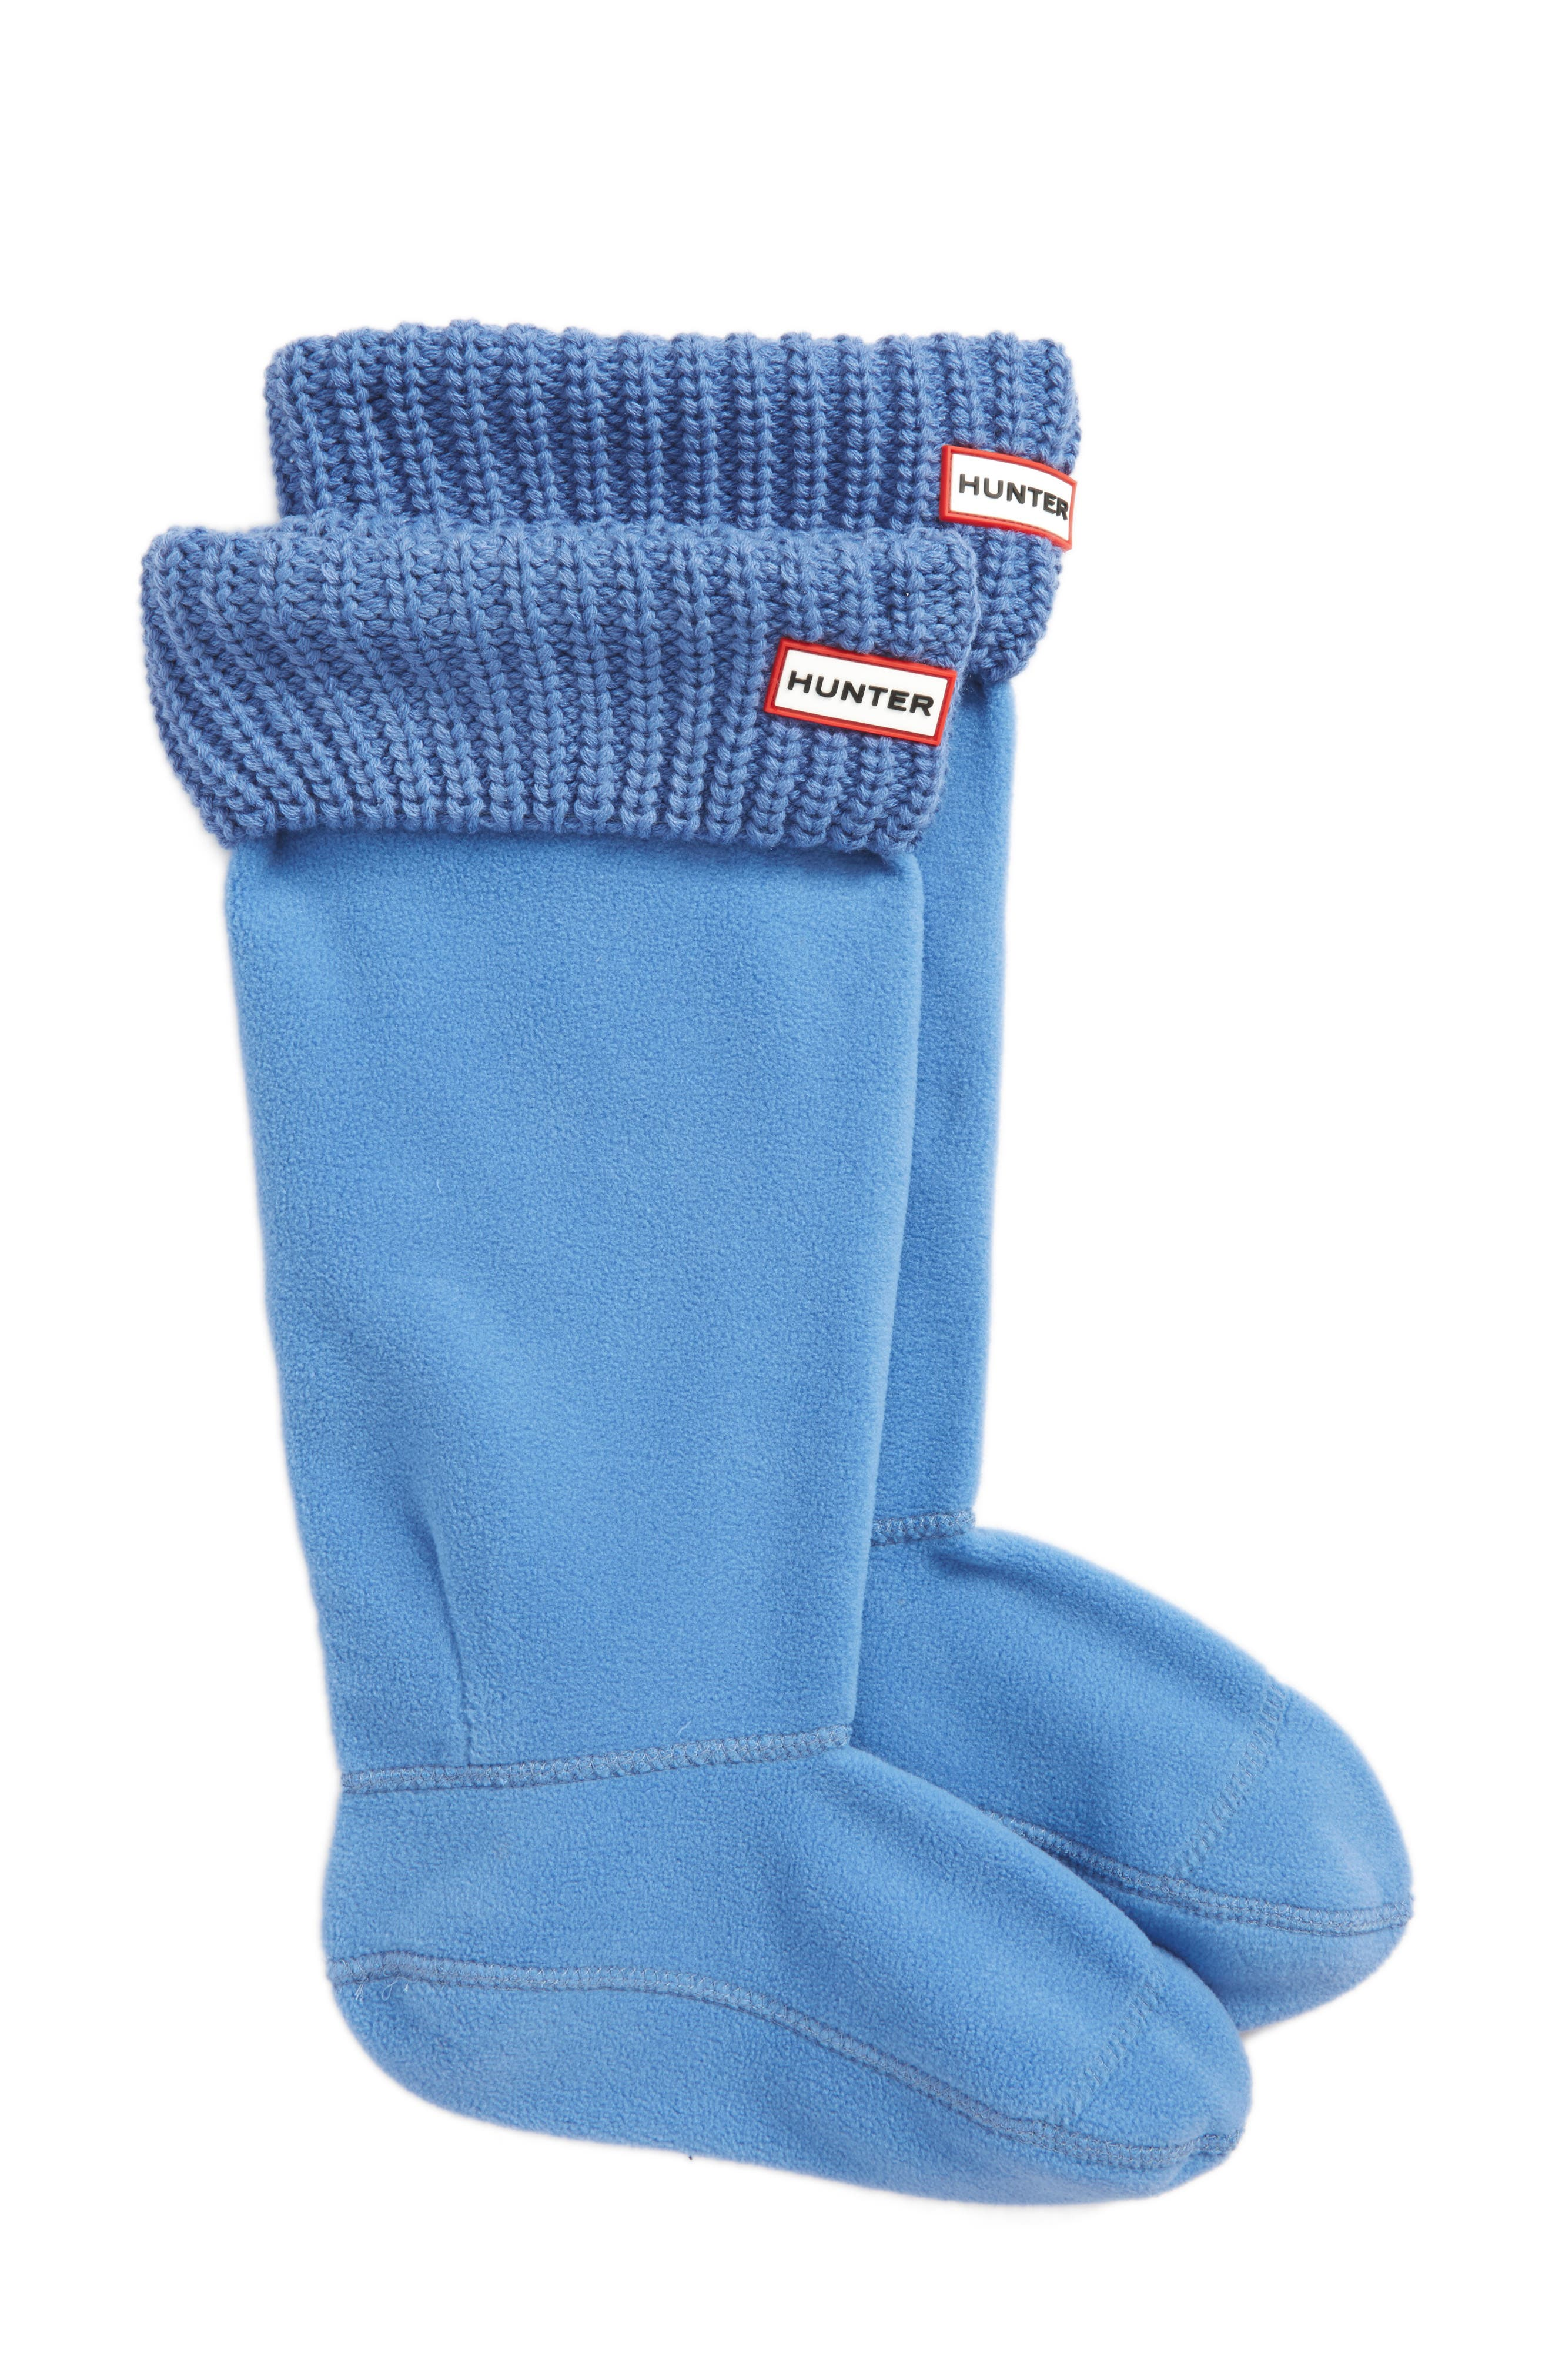 Main Image - Hunter Tall Cardigan Knit Cuff Welly Boot Socks